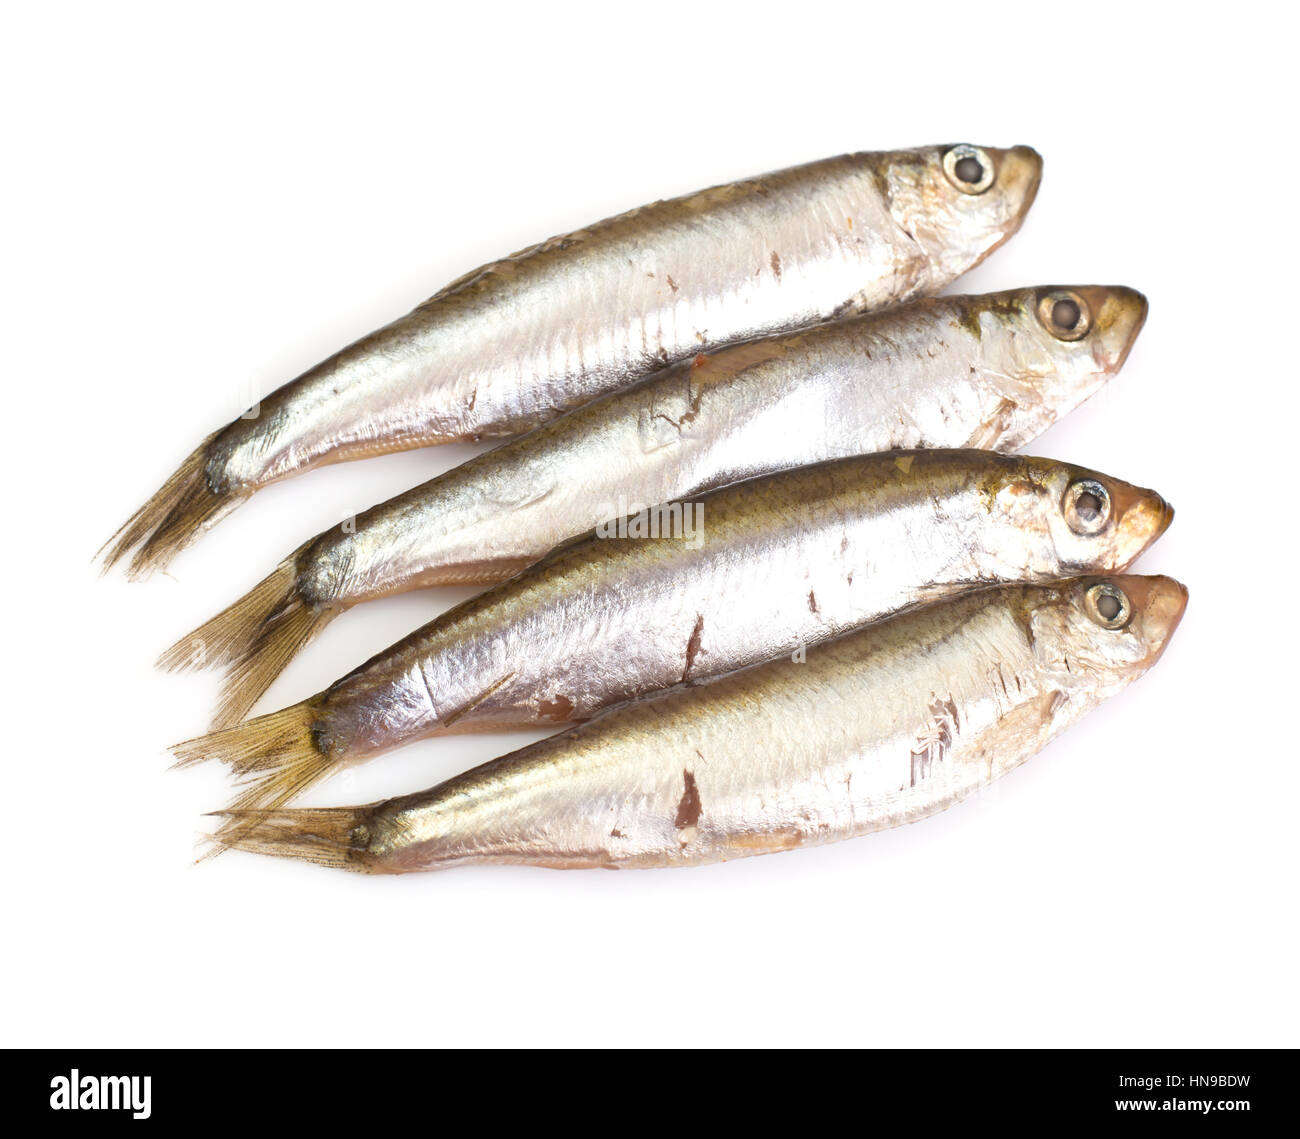 Marinated anchovies isolate on a white background - Stock Image